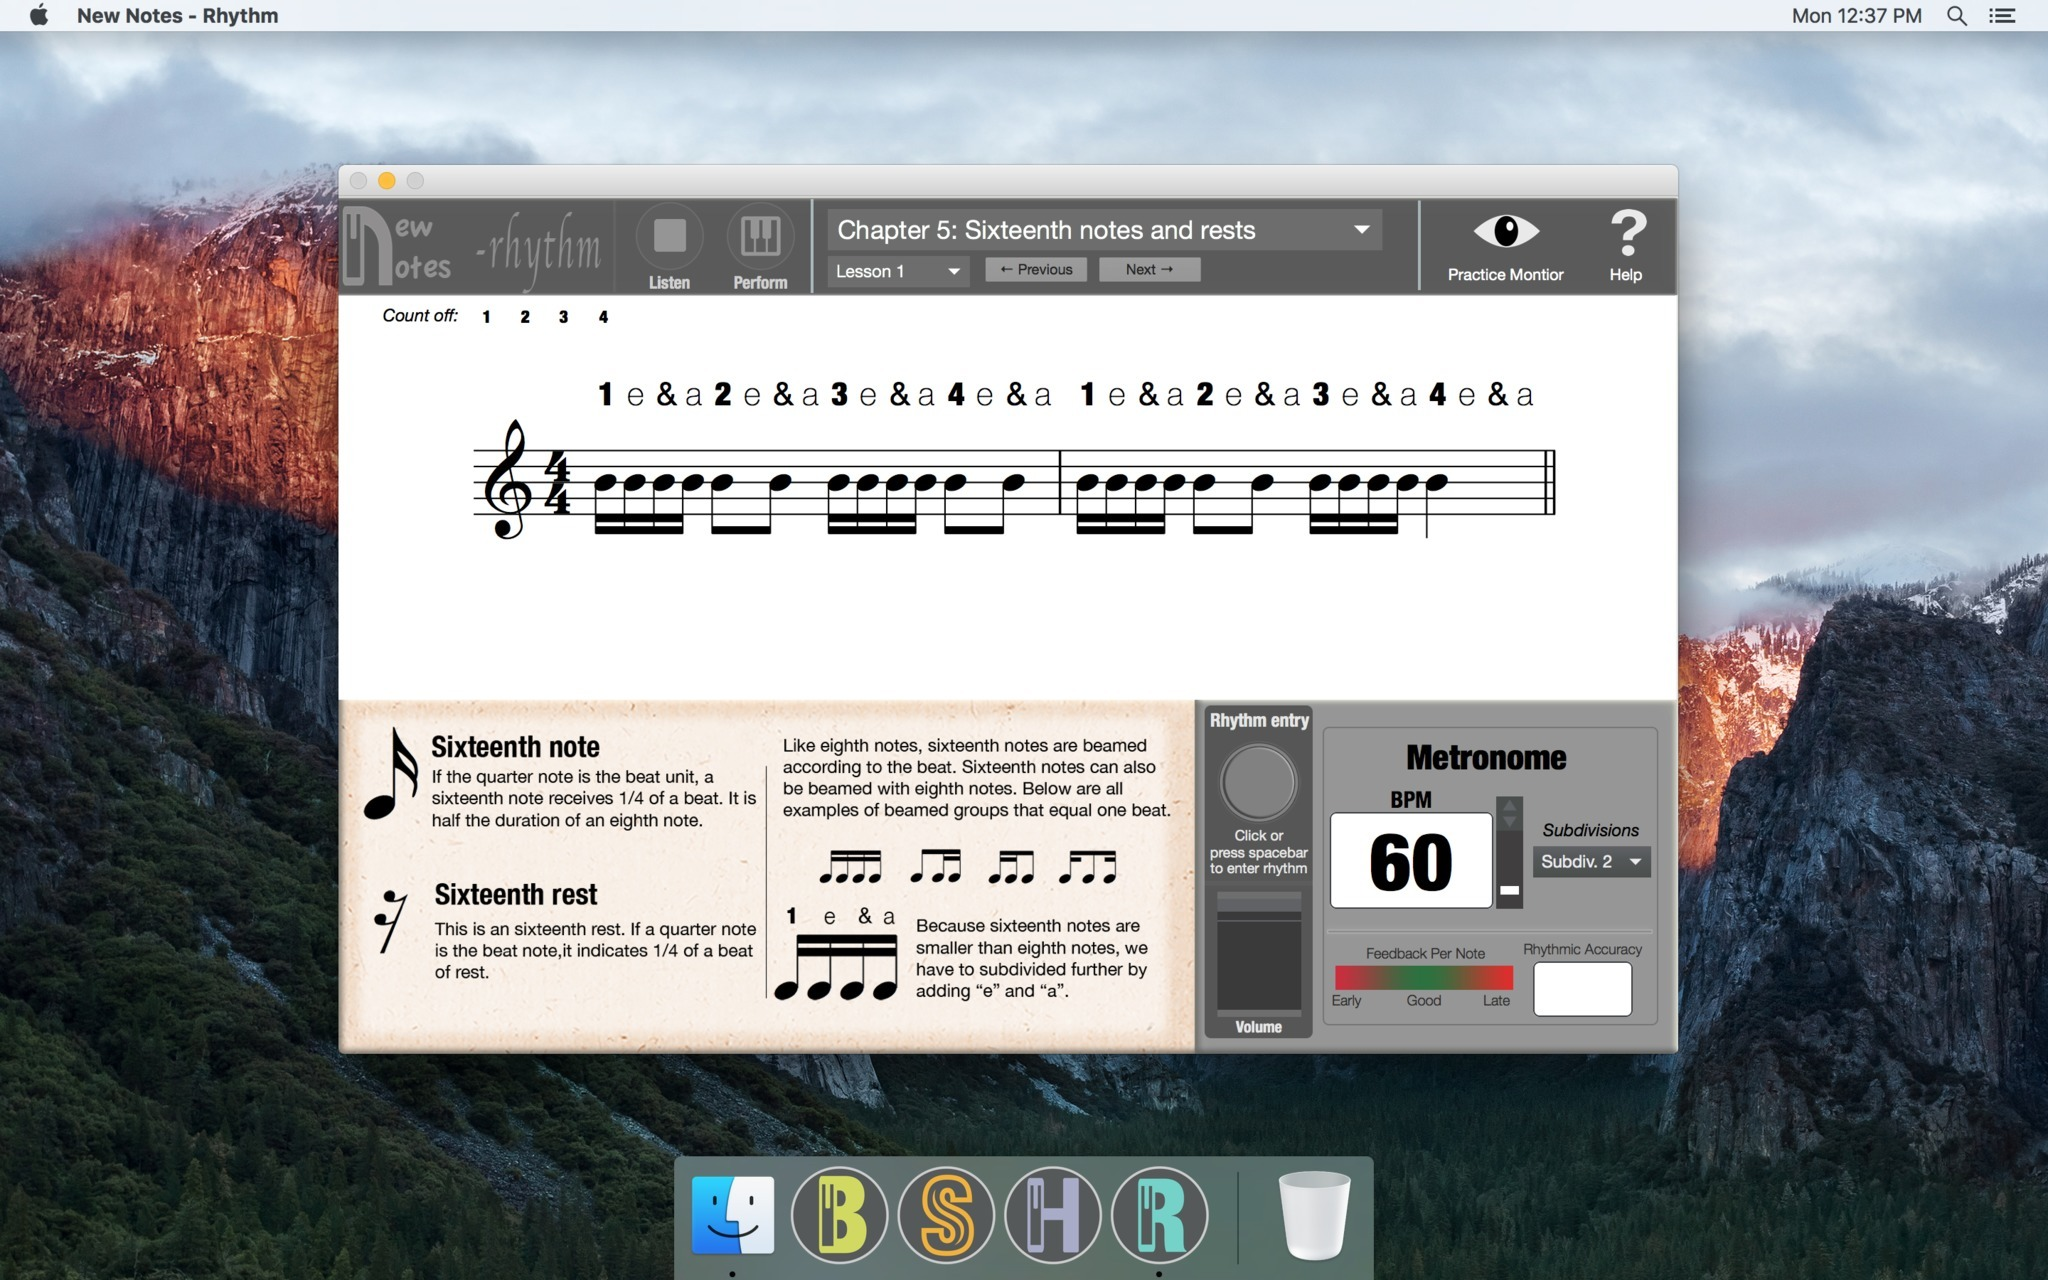 Screenshot 1 for New Notes - Rhythm